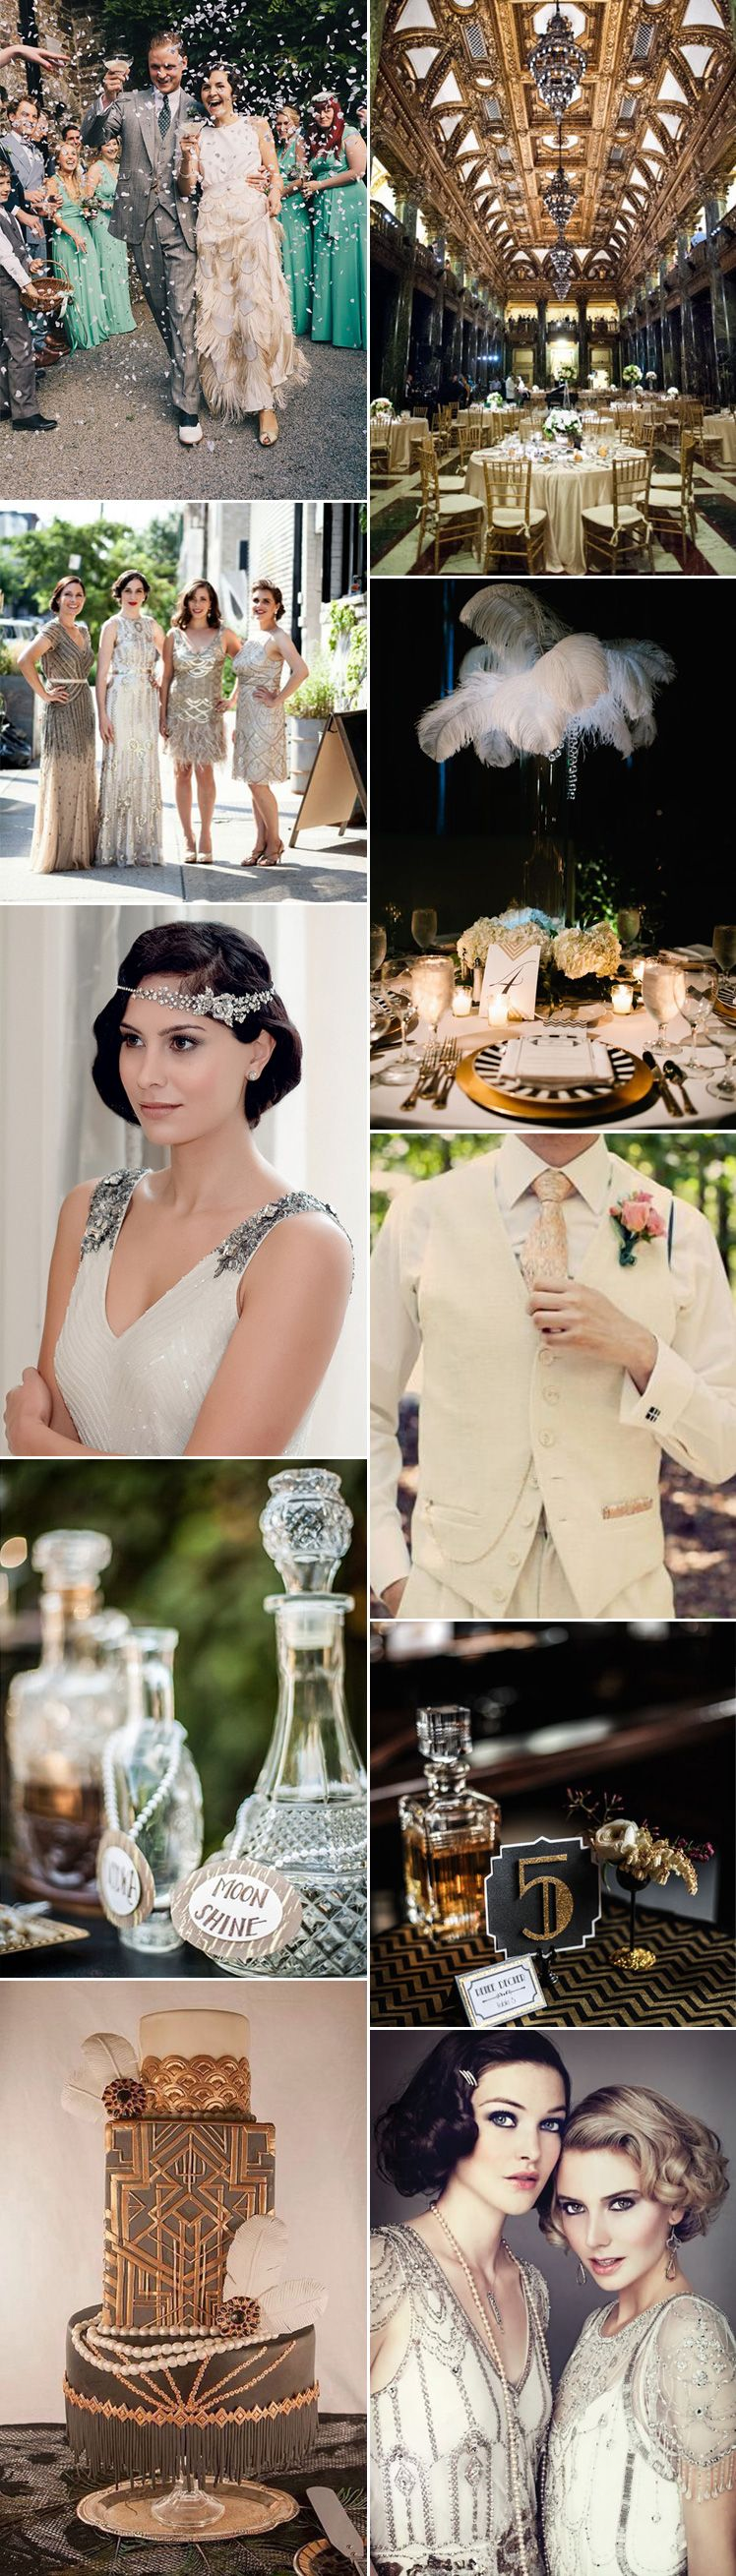 1920s wedding decoration ideas  Gatsby Glamour s Wedding Ideas  Weddings  Pinterest  s